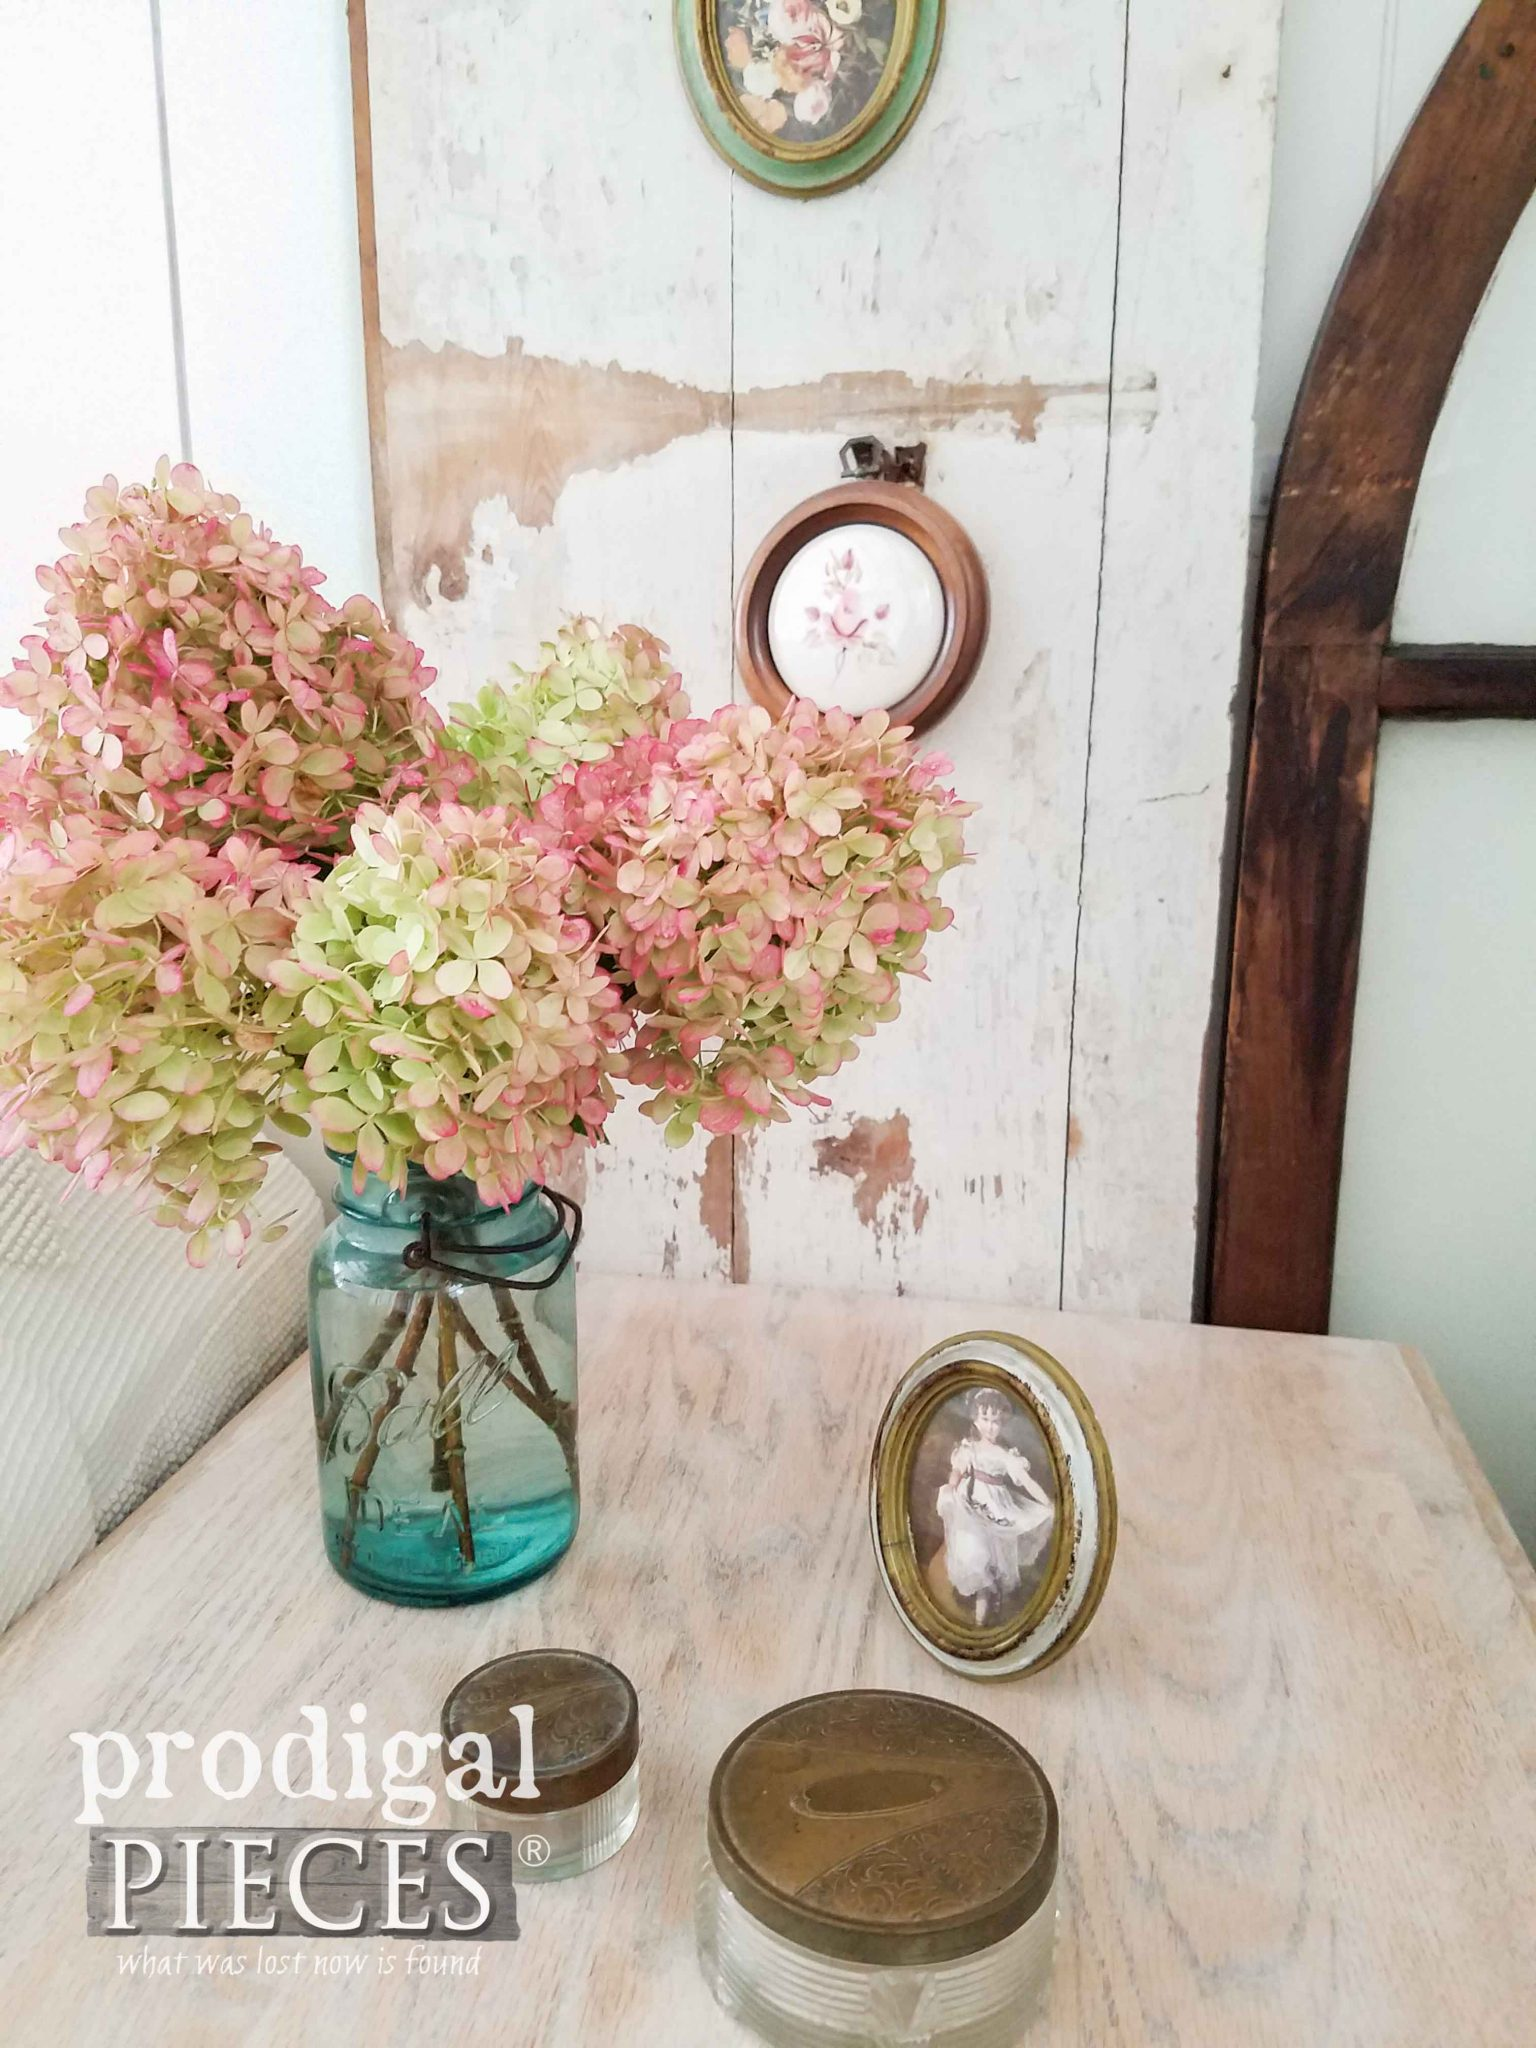 Bouquet of Hydrangea for Cottage Style Decor at Prodigal Pieces | prodigalpieces.com